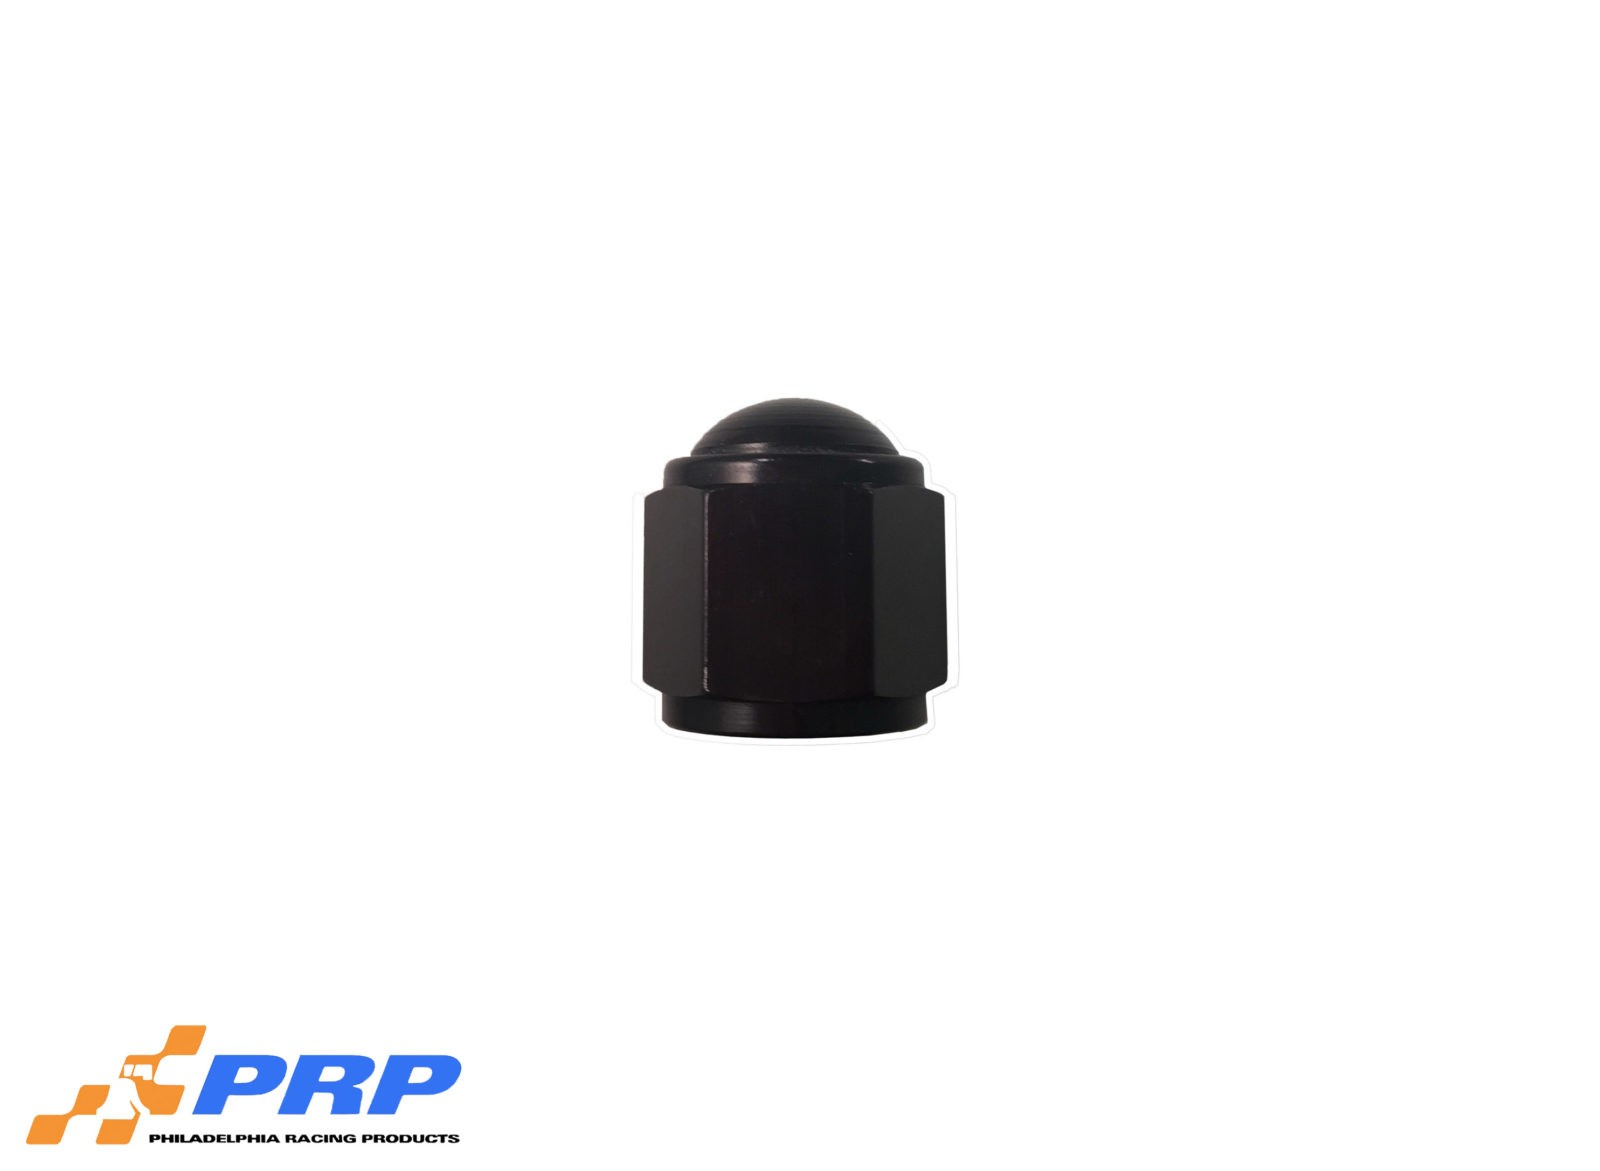 Black Flare Caps - 10-AN made by PRP Racing Products